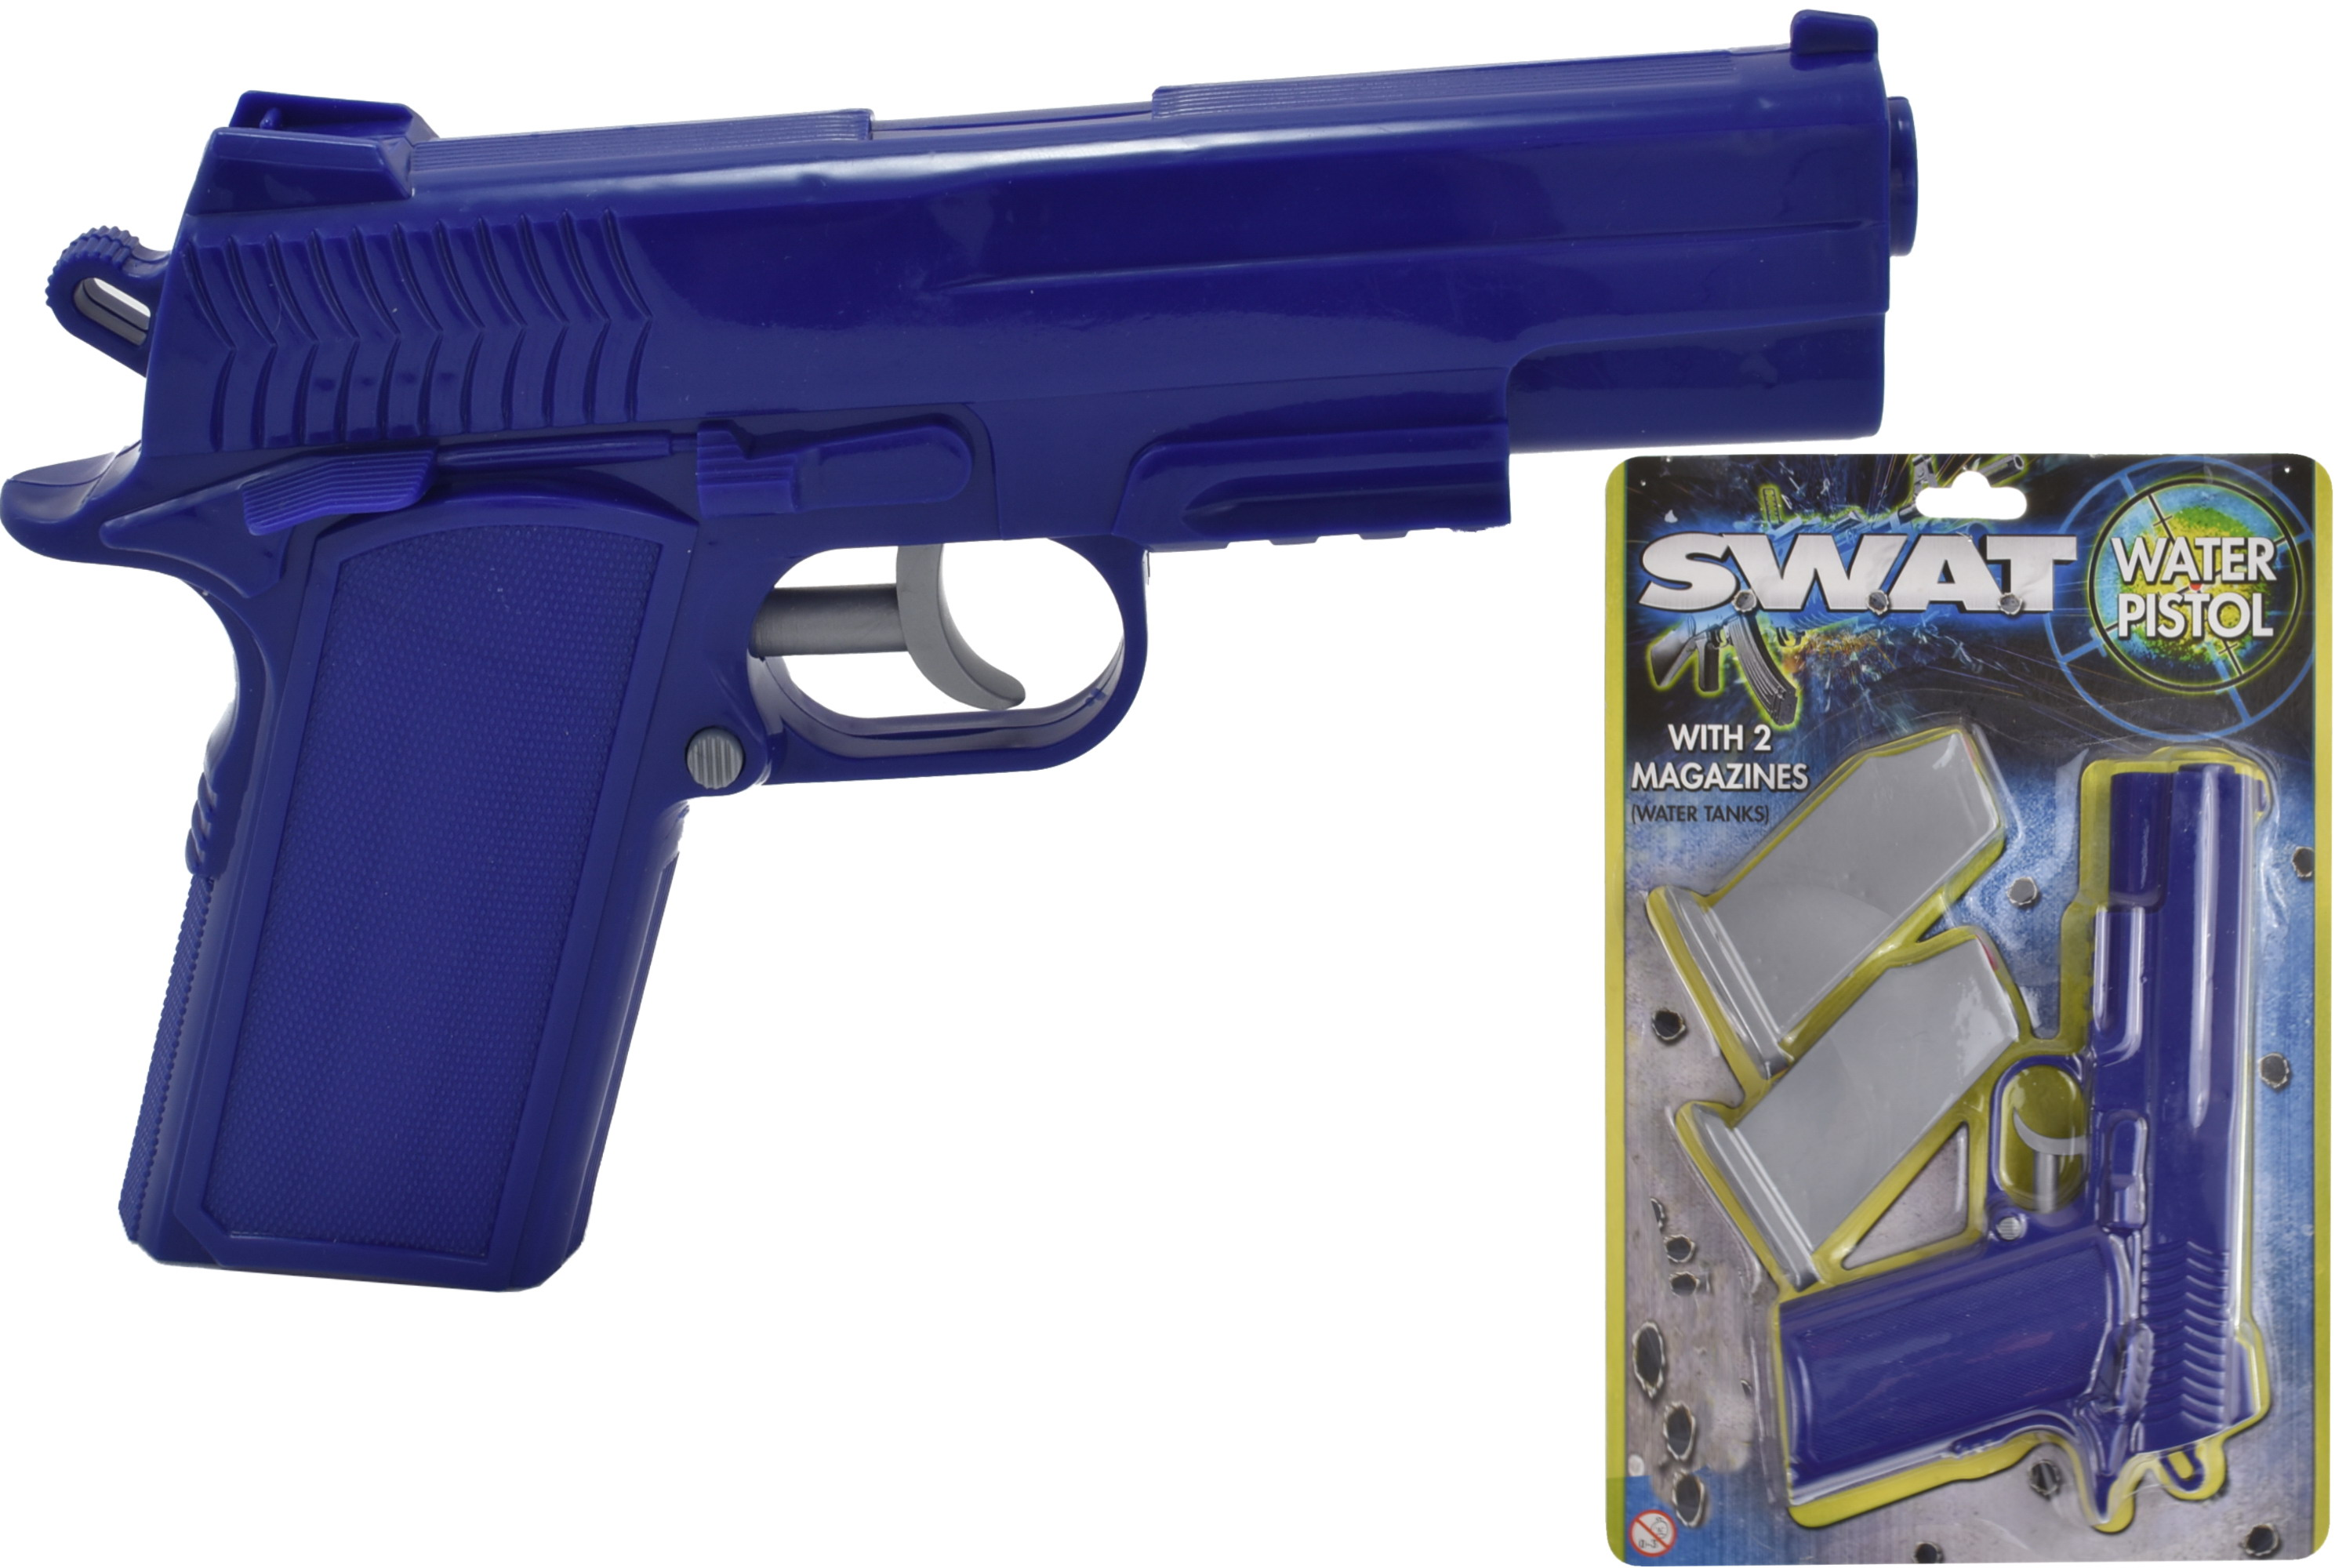 "Waterpistol With 2 Magazines On Blistercard ""Swat"""